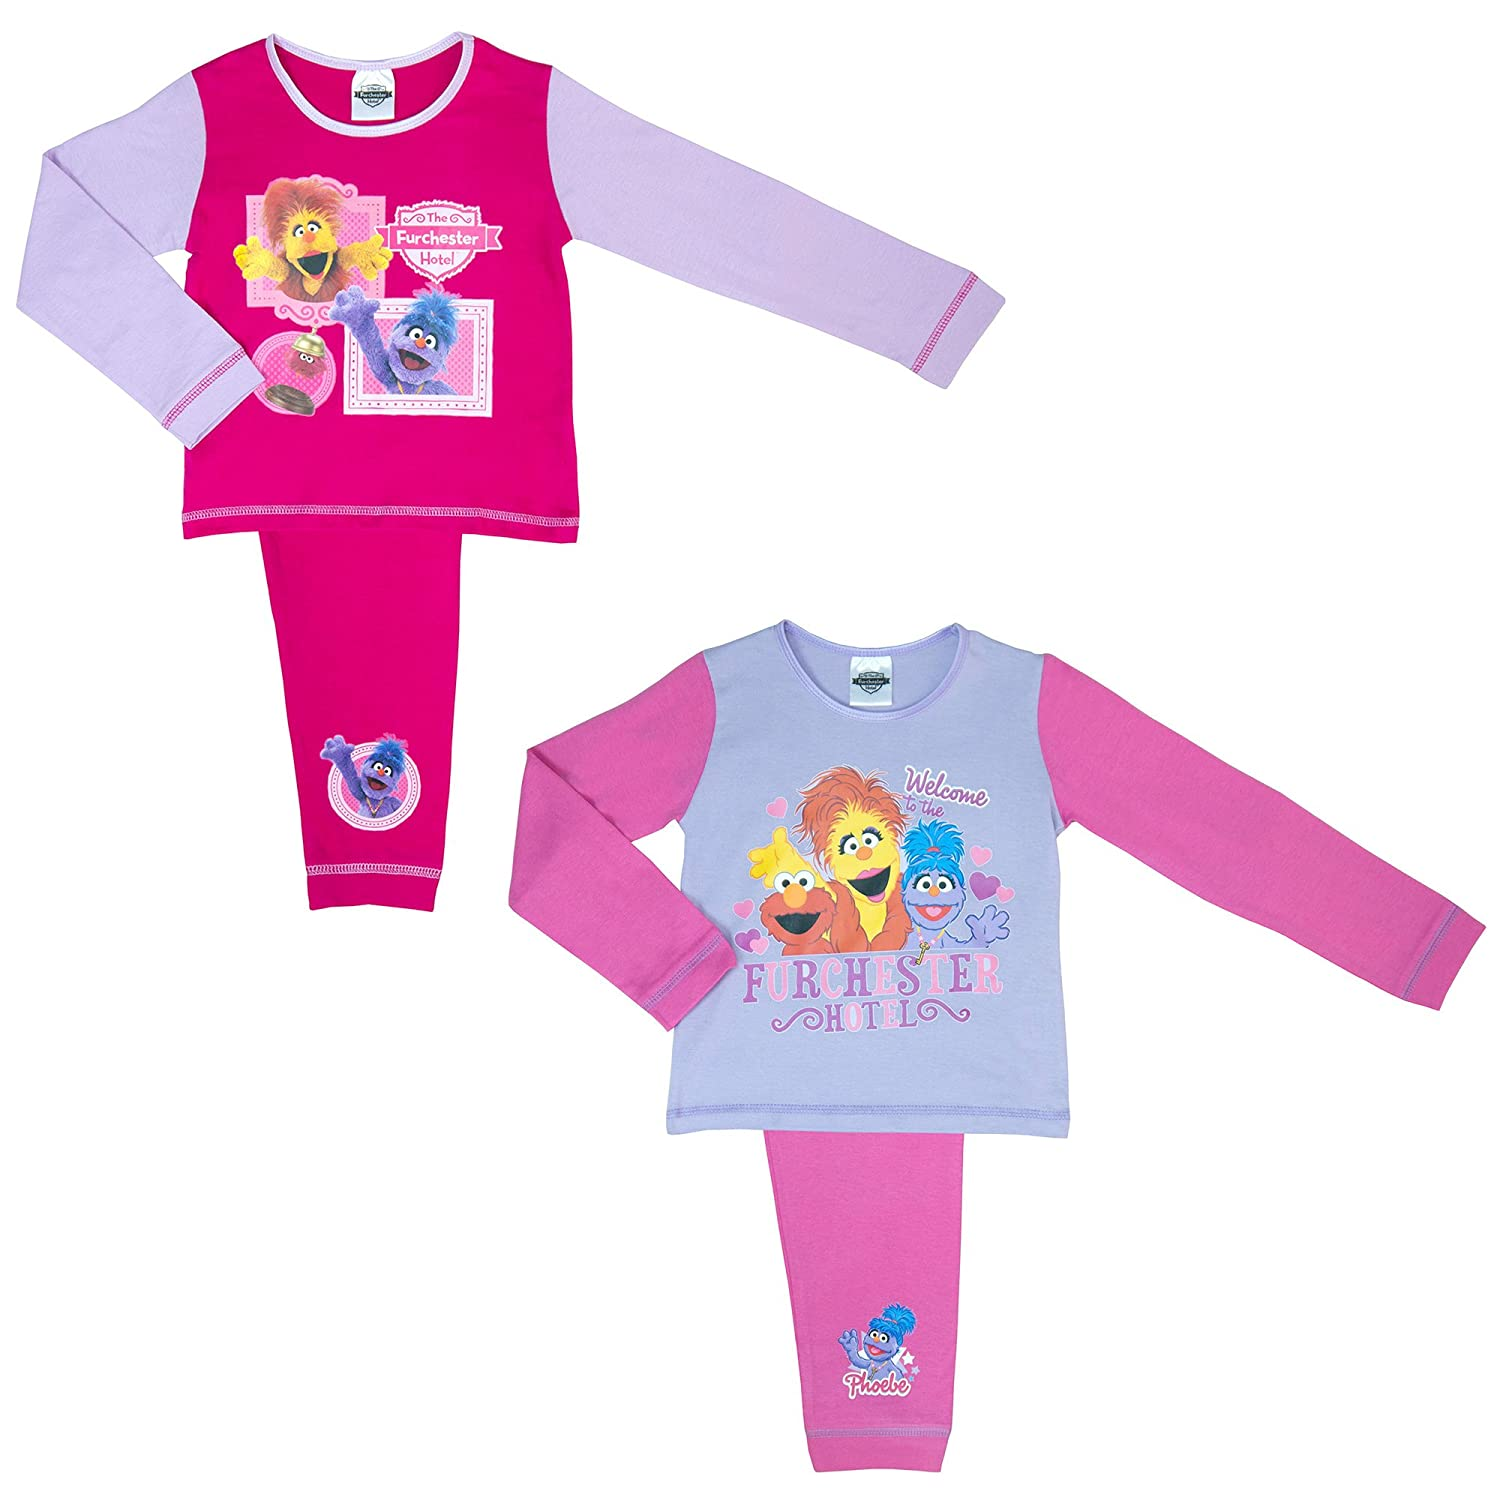 Cartoon Character Products 2 Pack Furchester Hotel Girls Pyjamas - 18 Months to 5 Years